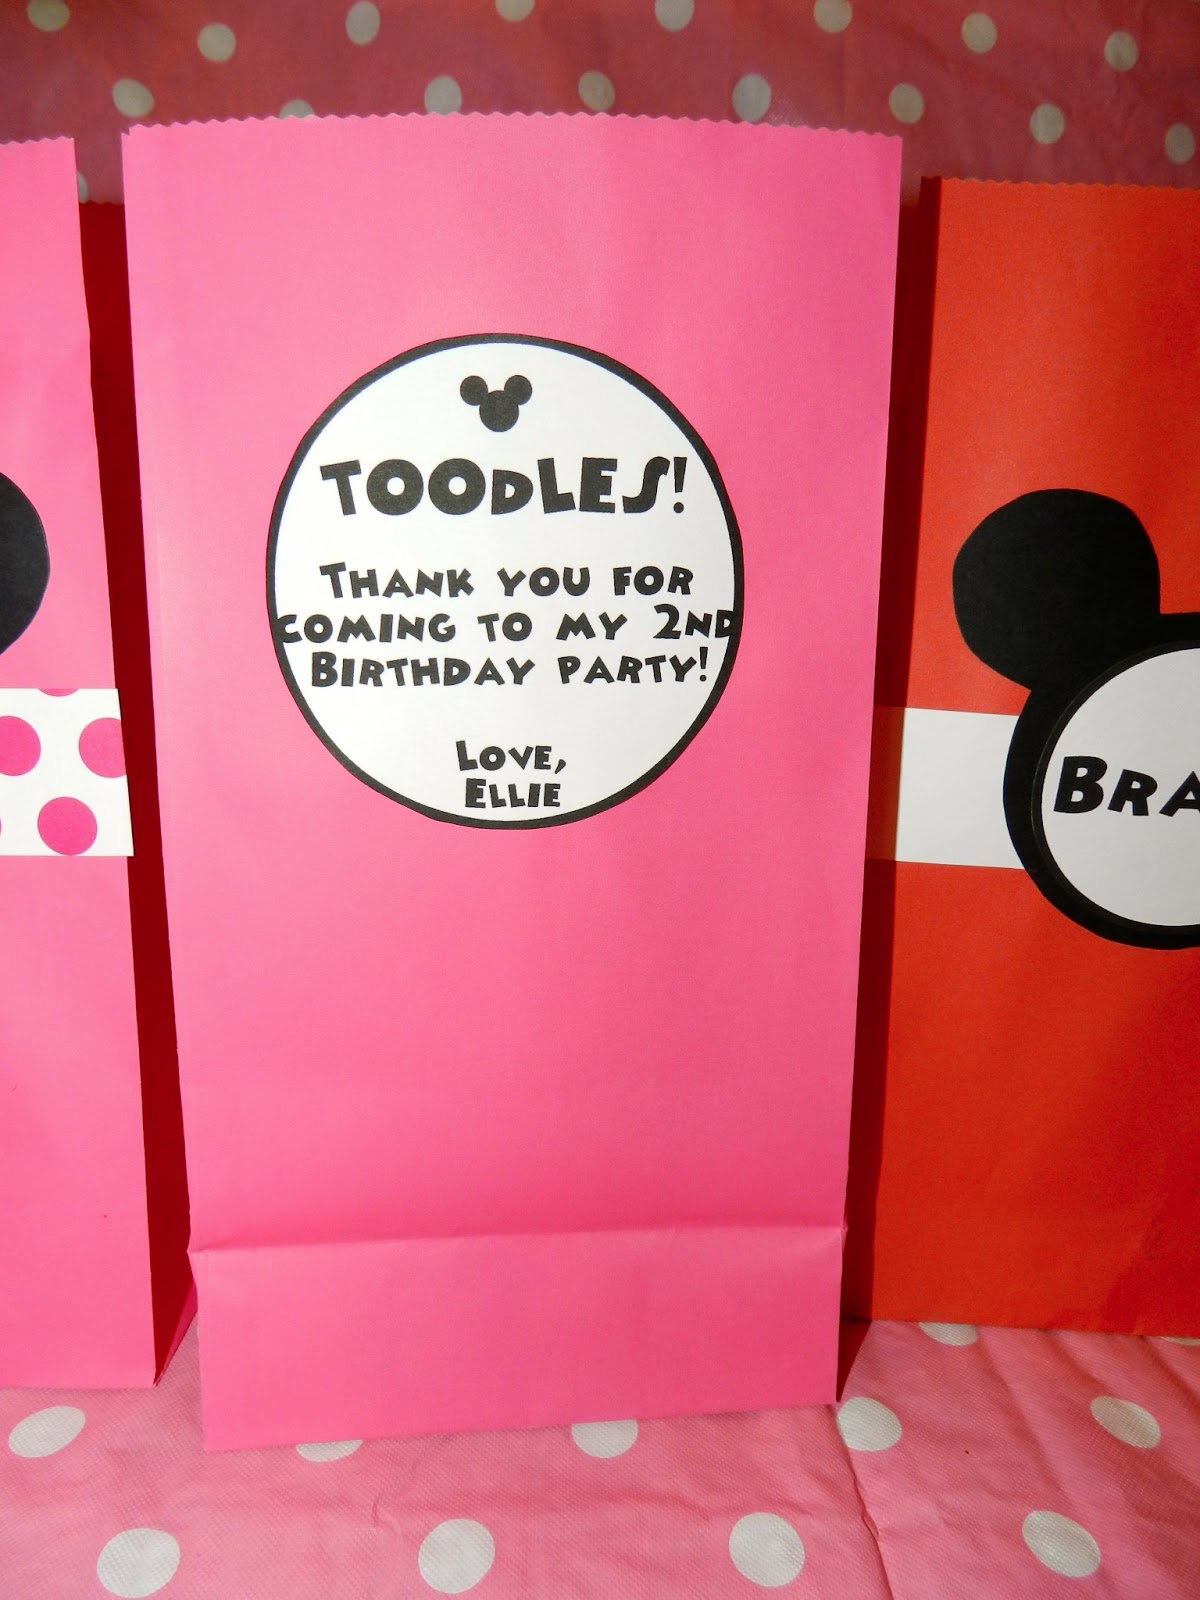 Krispie Treats Inside That Are Shaped As None Other But Minnie Mouse With The Chocolate Bow My Favorite Part Of Goo Bags Is Cute Saying I